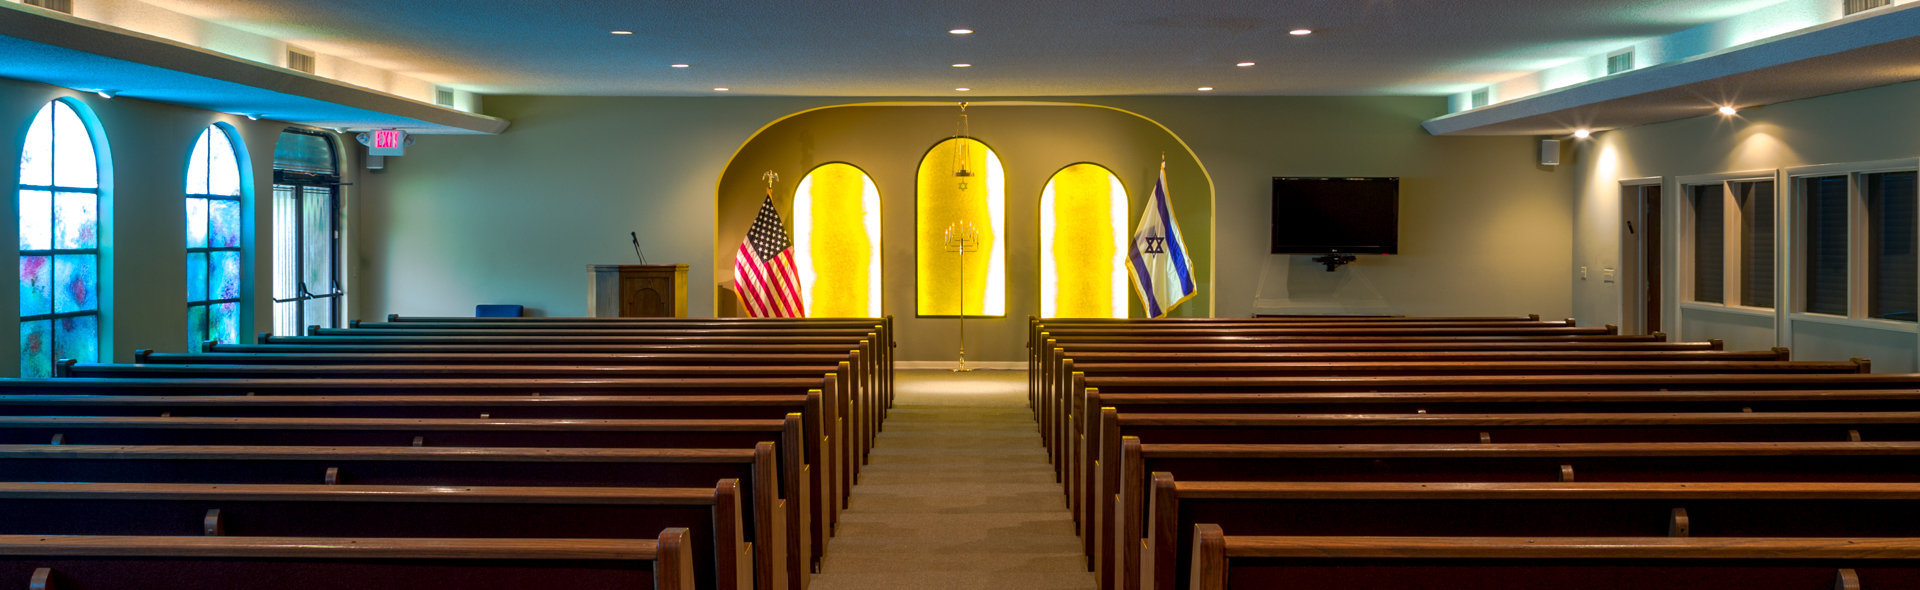 Levitt Weinstein / Eternal Light Funeral Service Center North Miami Beach